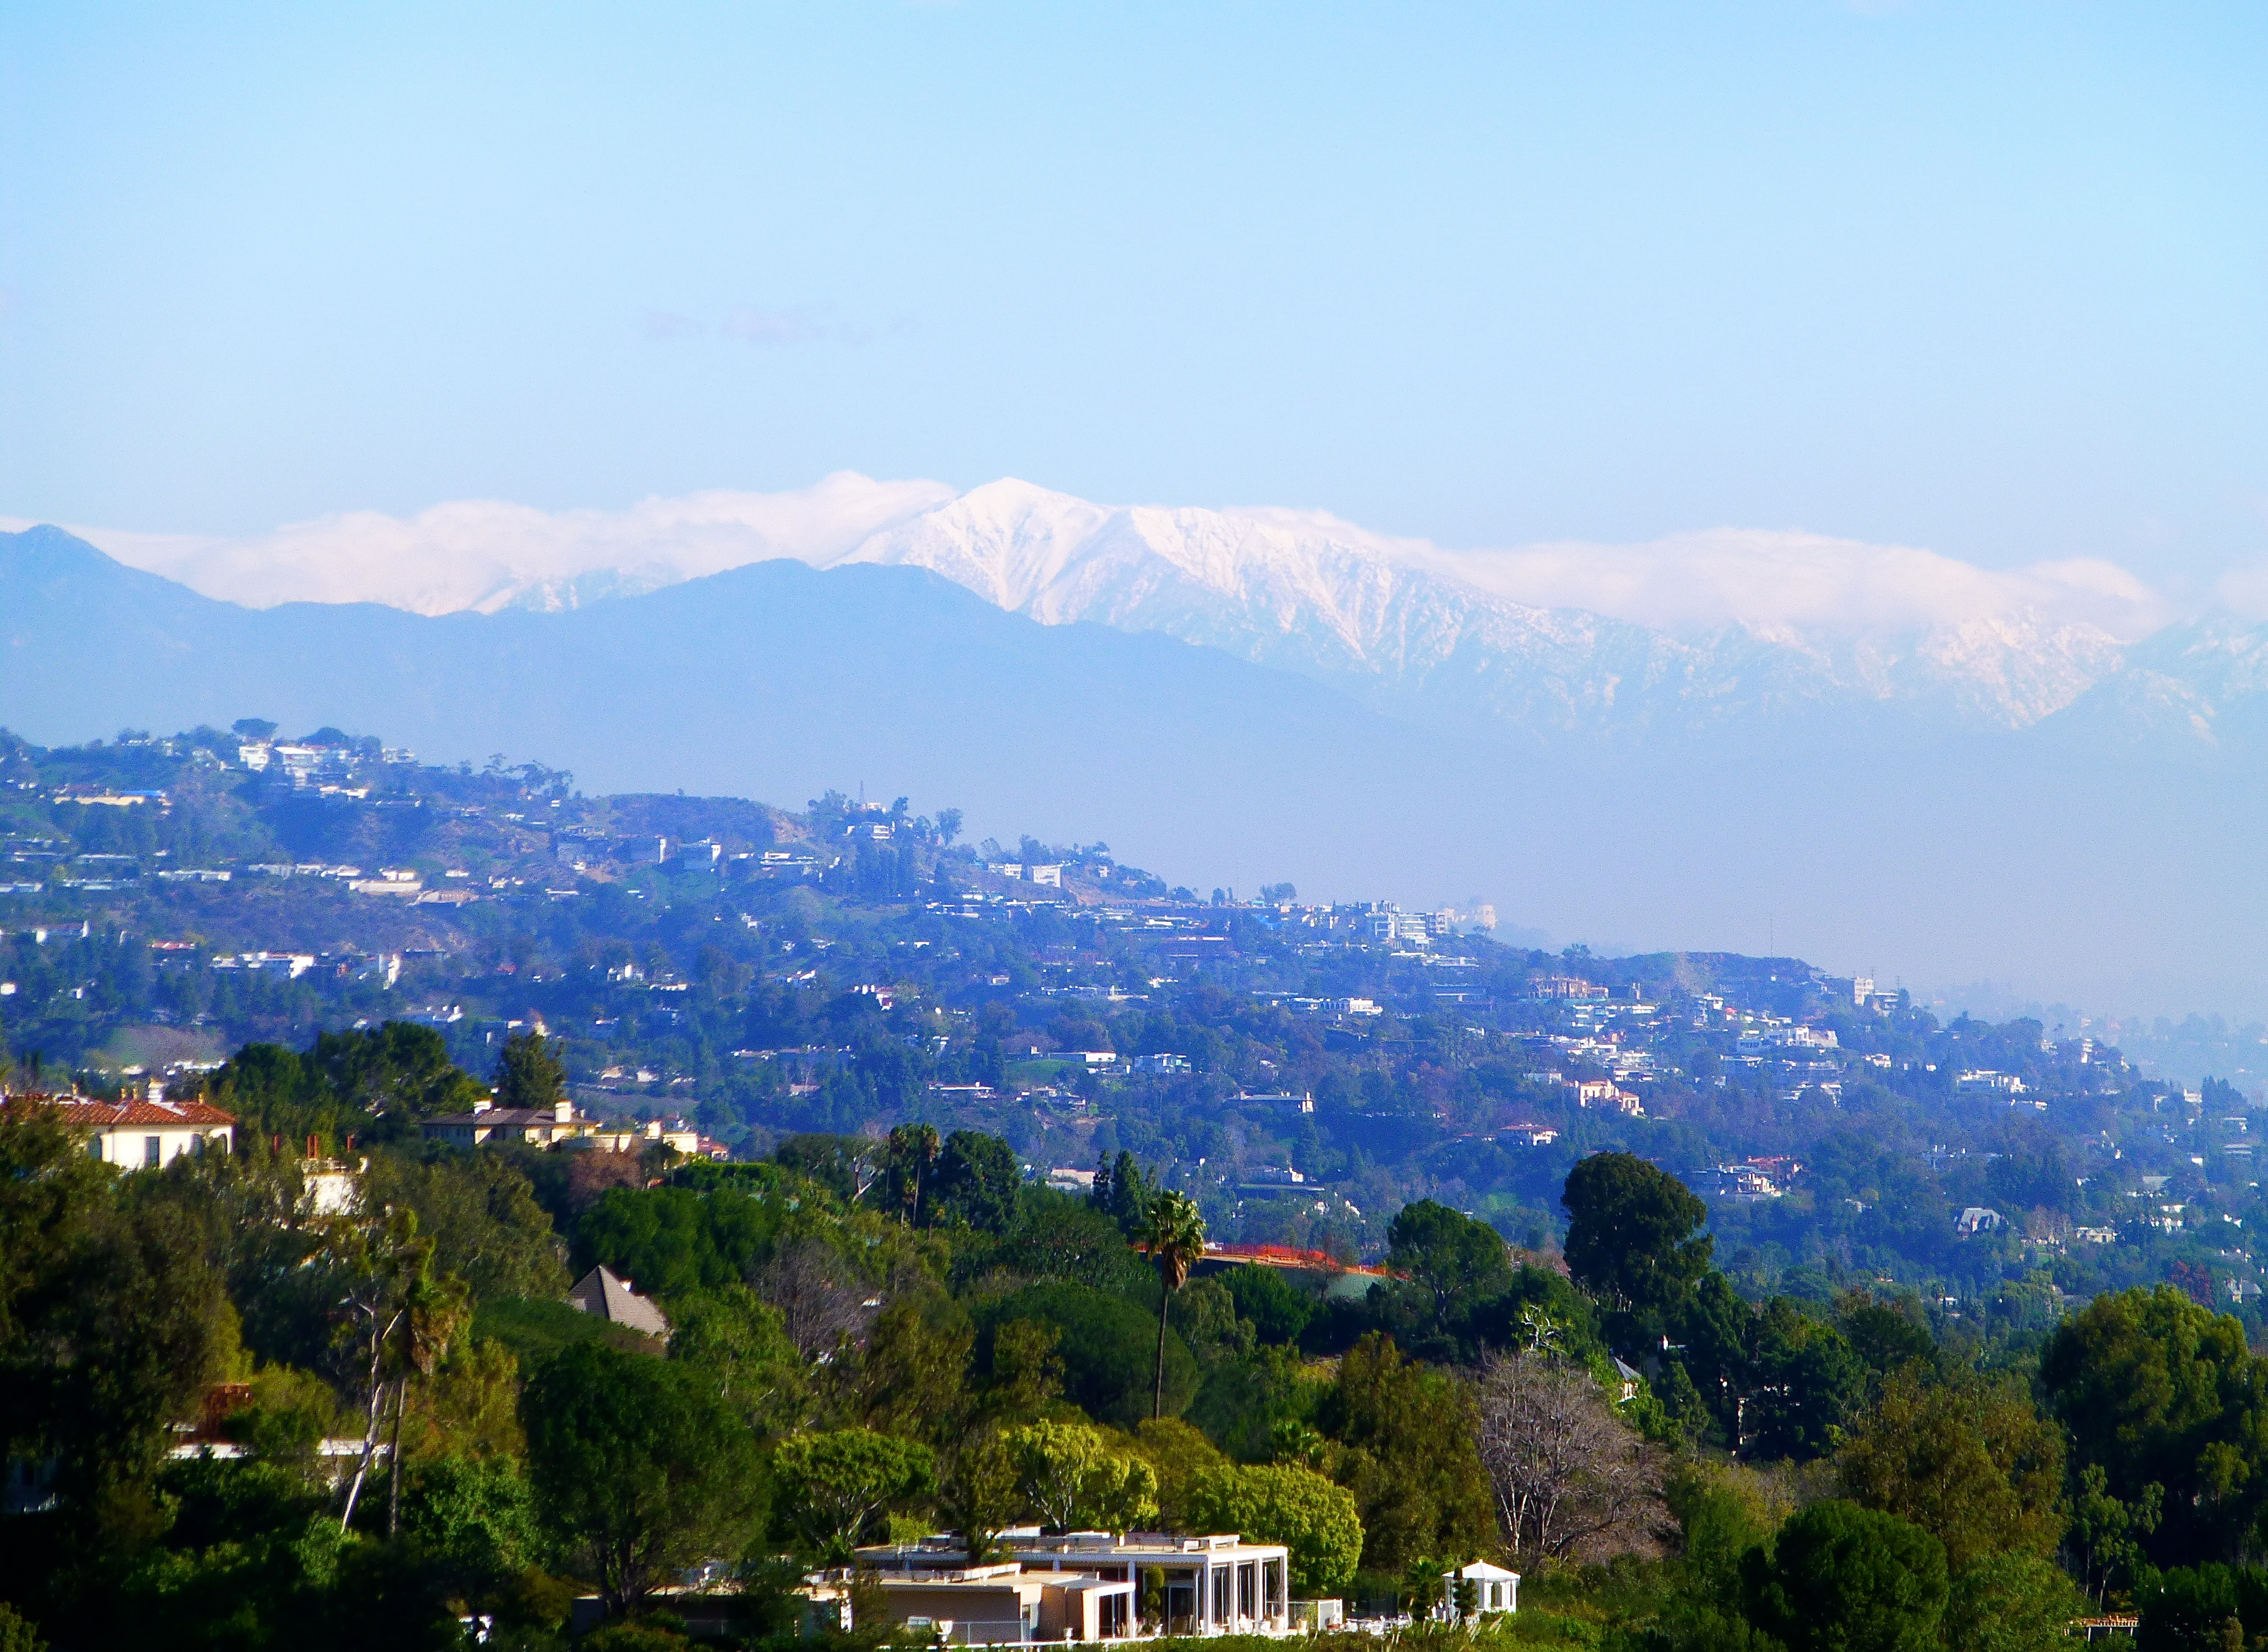 View of snow in the distance from the Getty